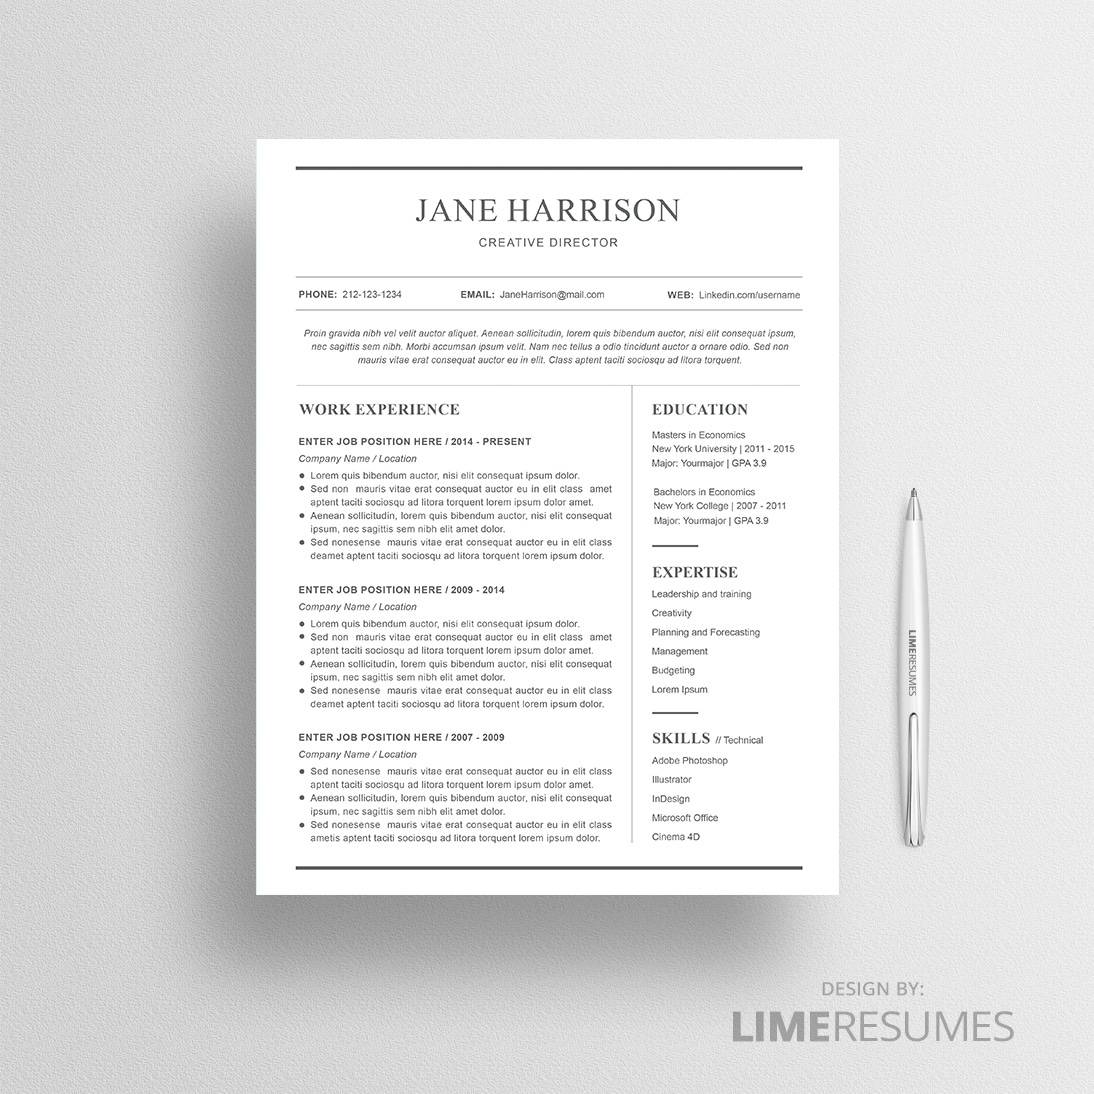 resume template 21 - Minimalist Resume Template